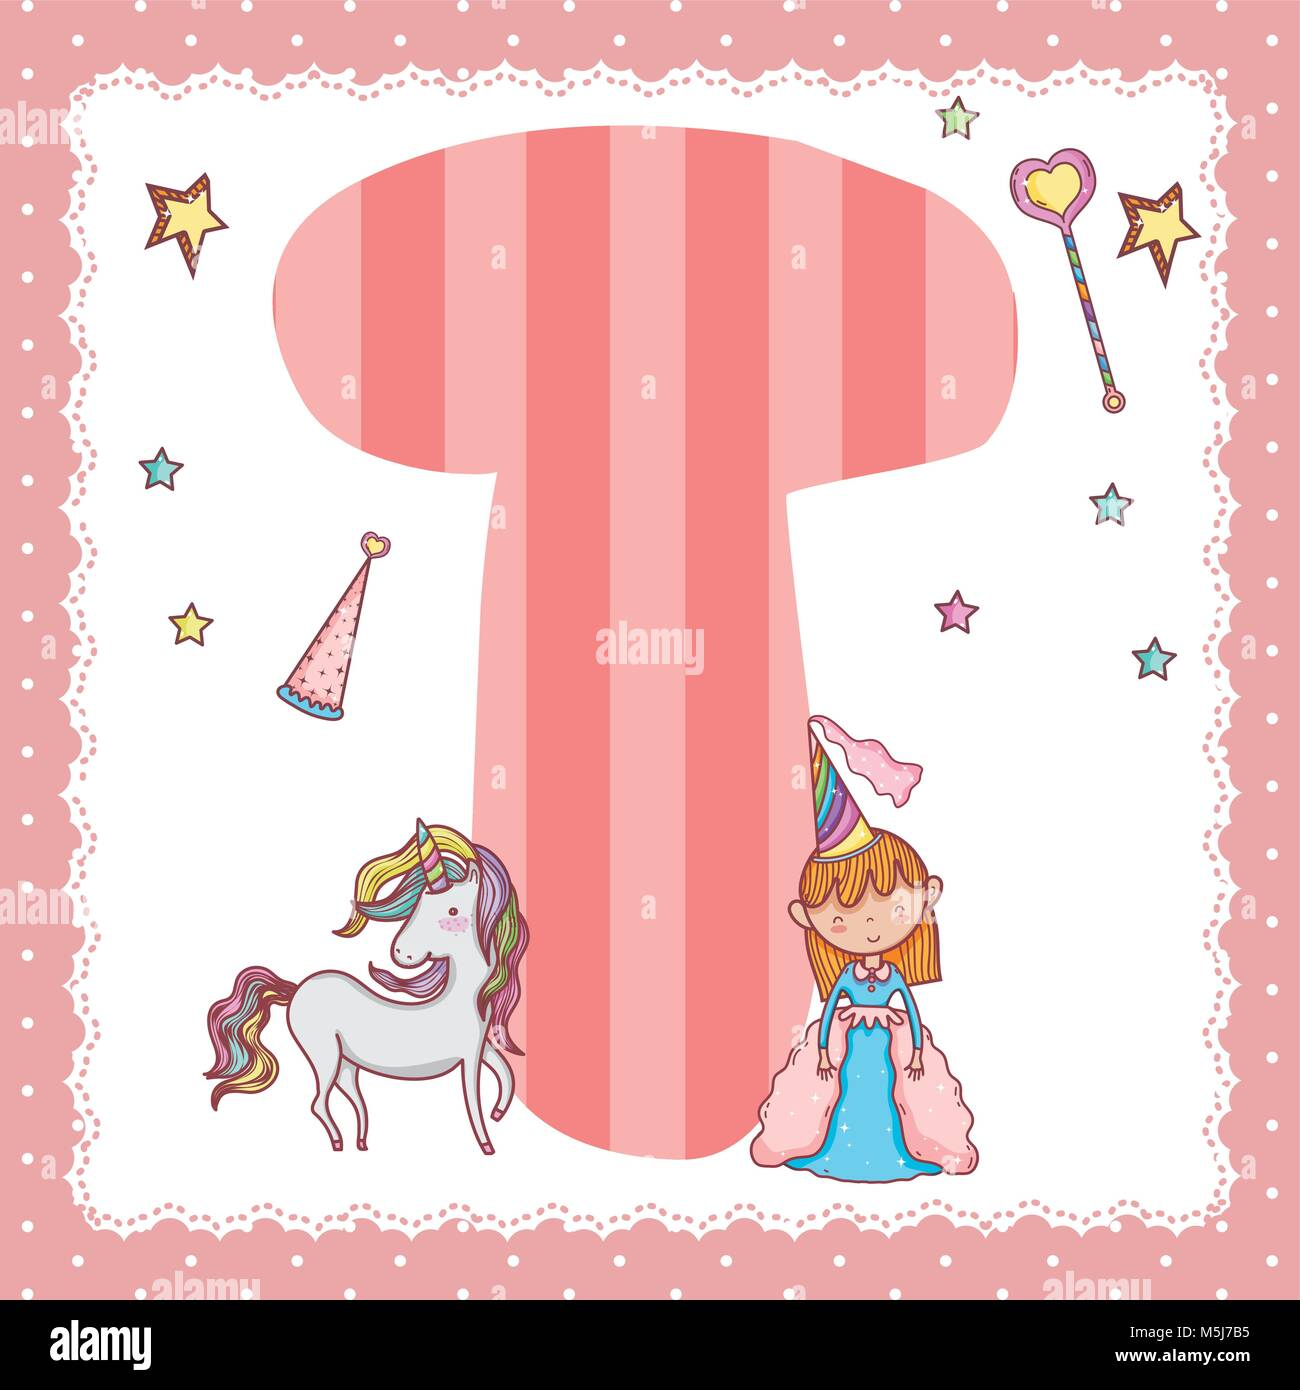 Cartoon Letter T Stock Photos & Cartoon Letter T Stock Images - Alamy